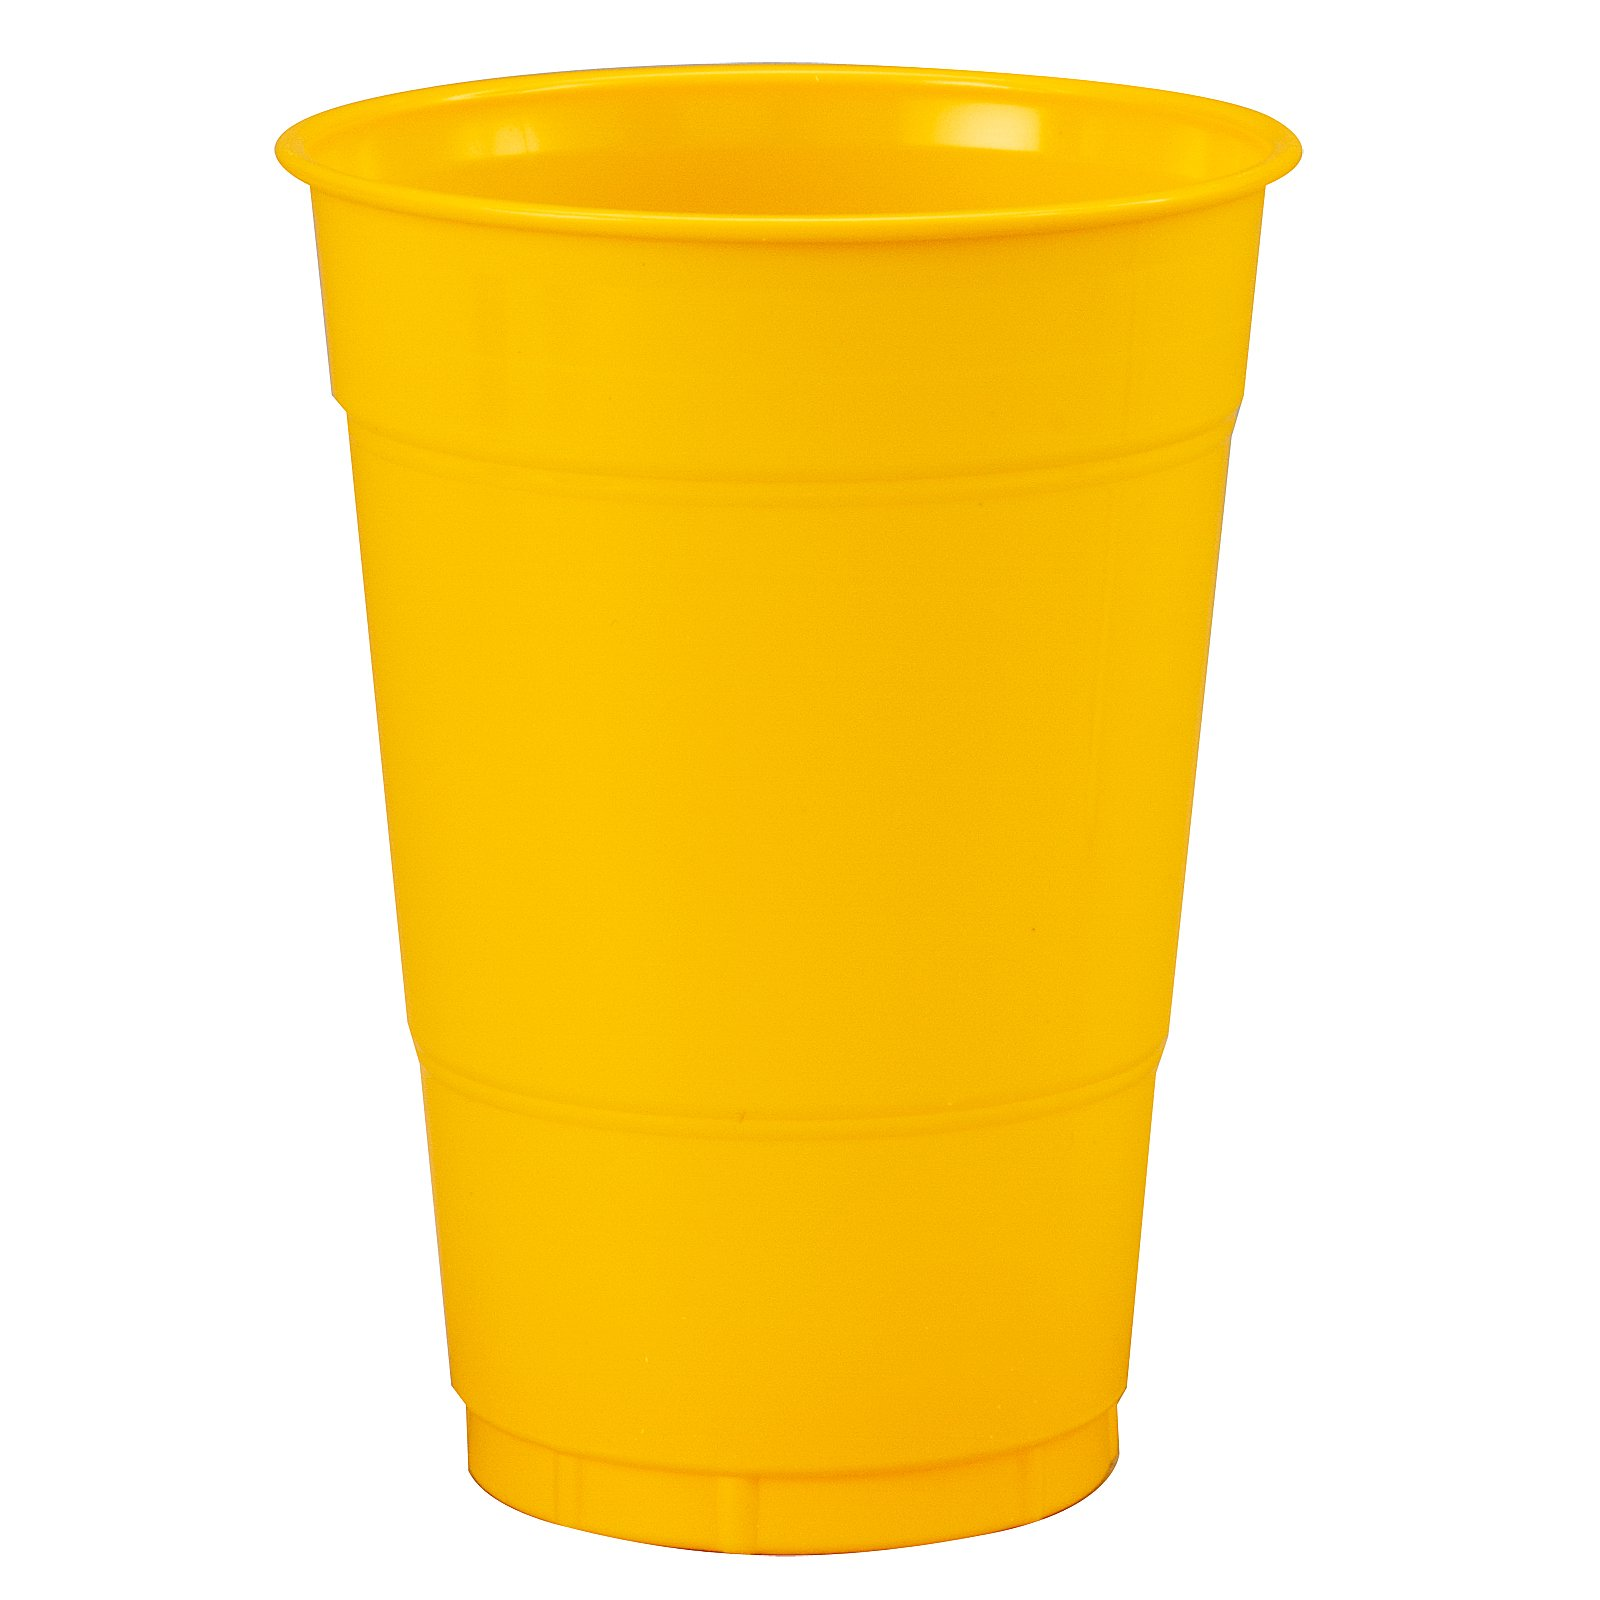 School Bus Yellow (Yellow) 16 oz. Plastic Cups (20 count)